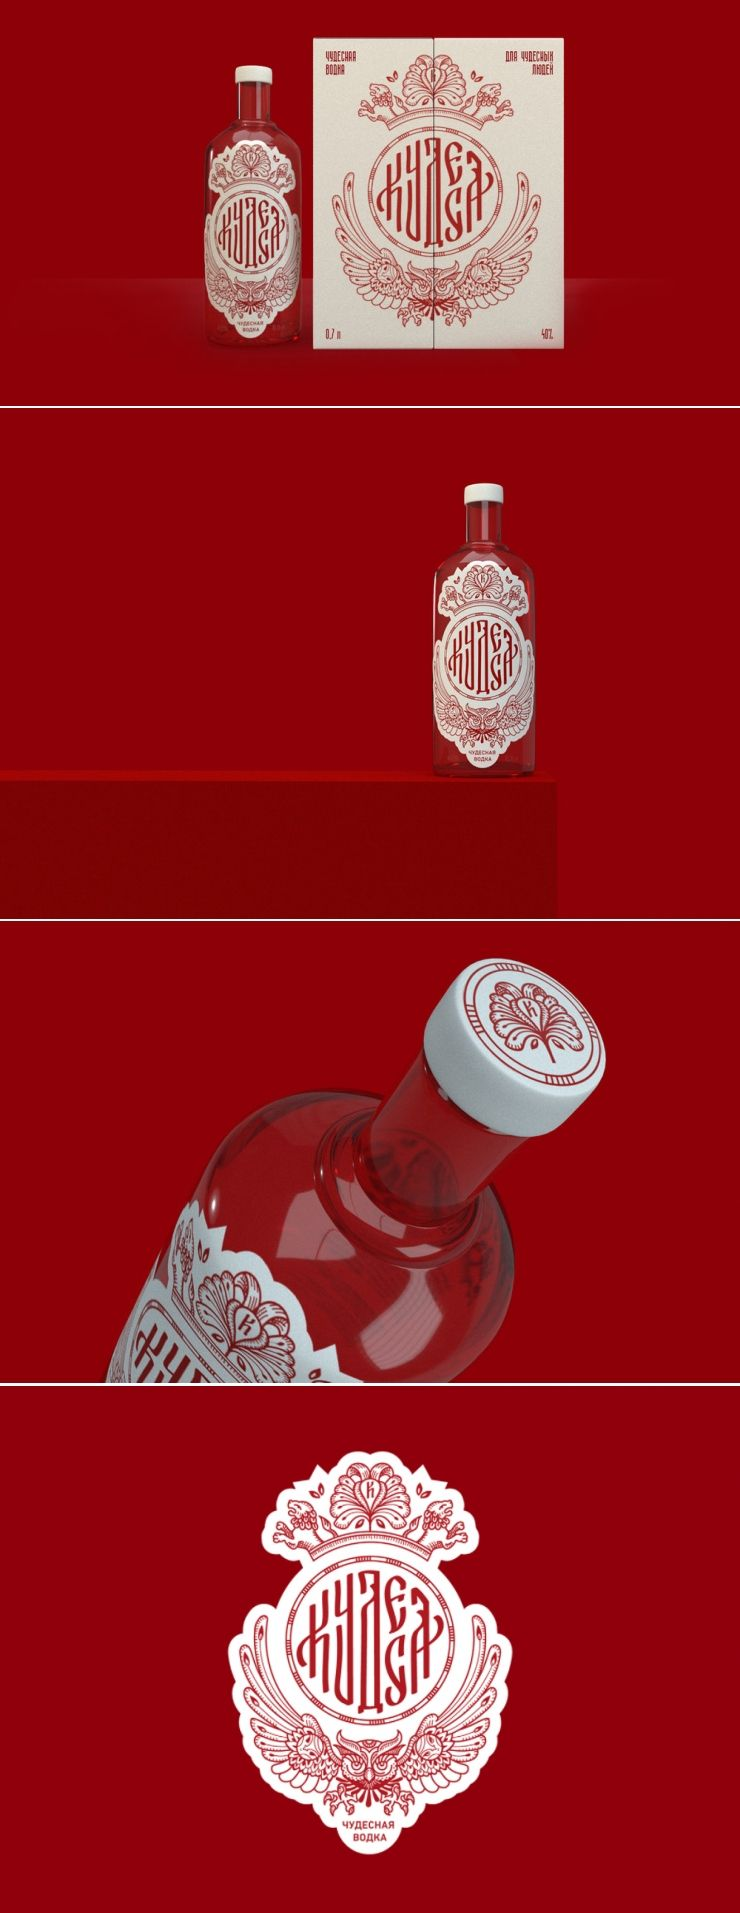 Kudesa Vodka S Packaging Features Eye Catching Calligraphy Graphic Design Packaging Vodka Packaging Packaging Design Inspiration